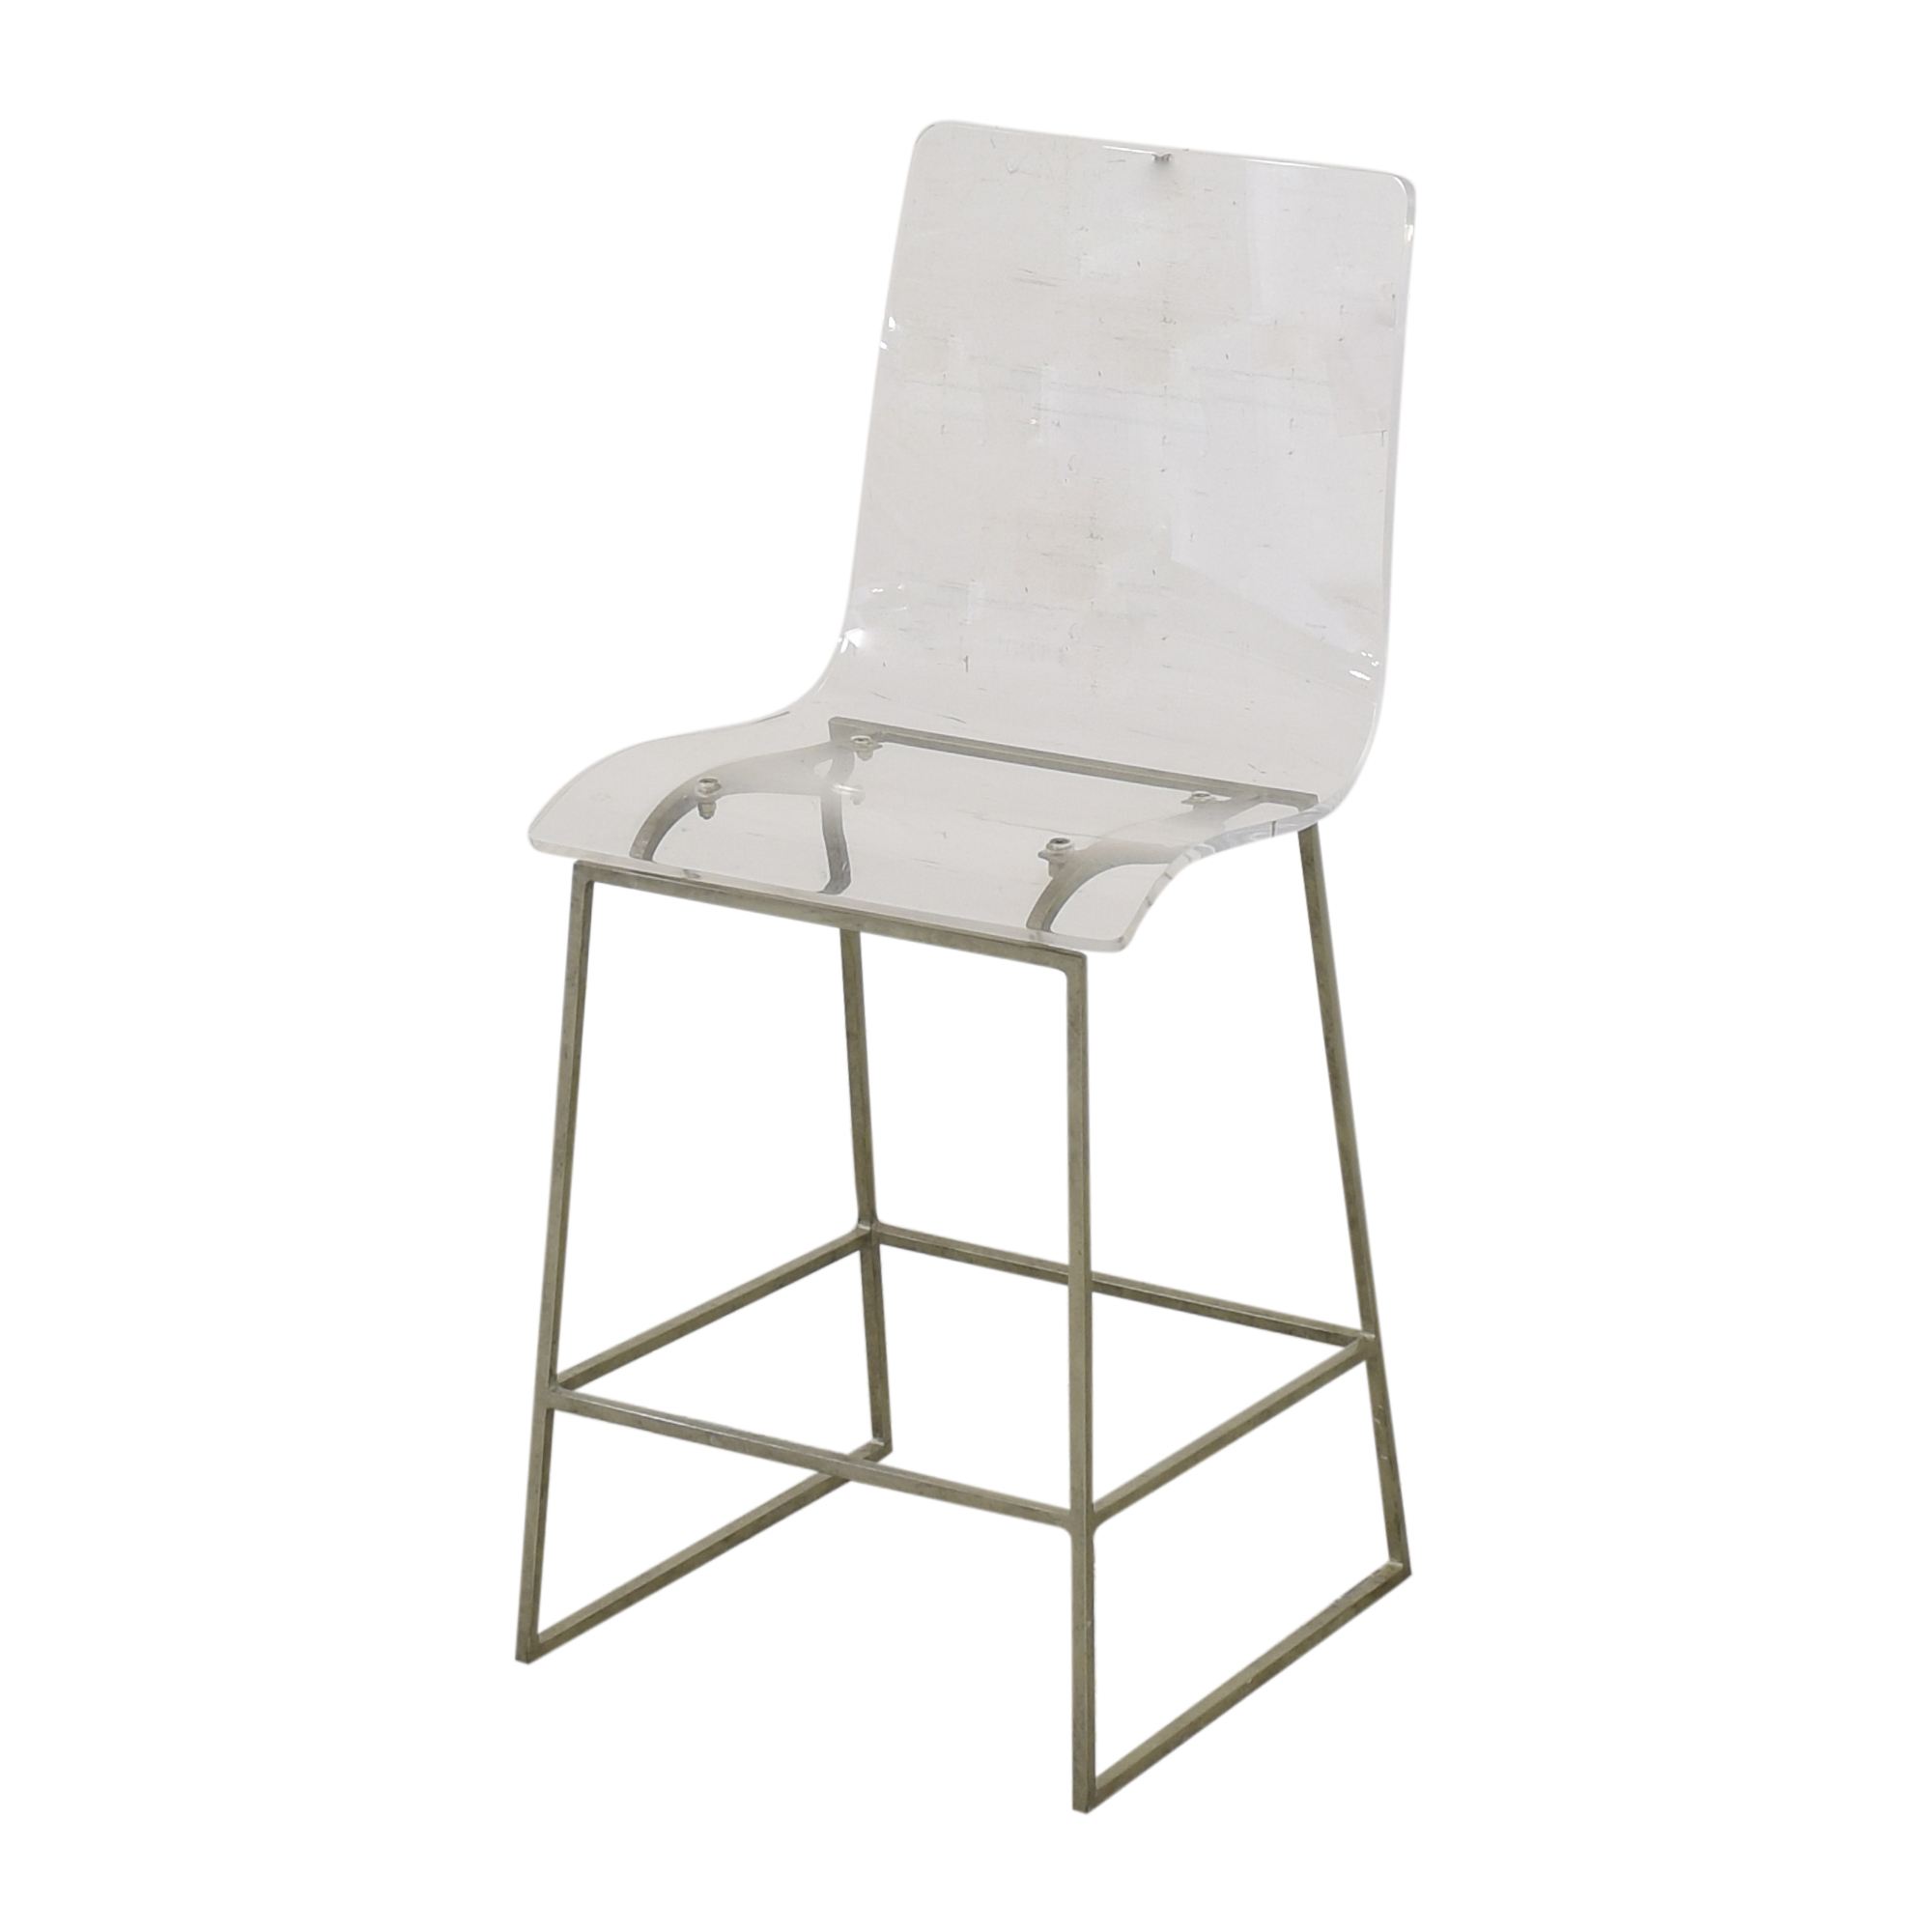 buy Lillian August Counter Stools Lillian August Stools